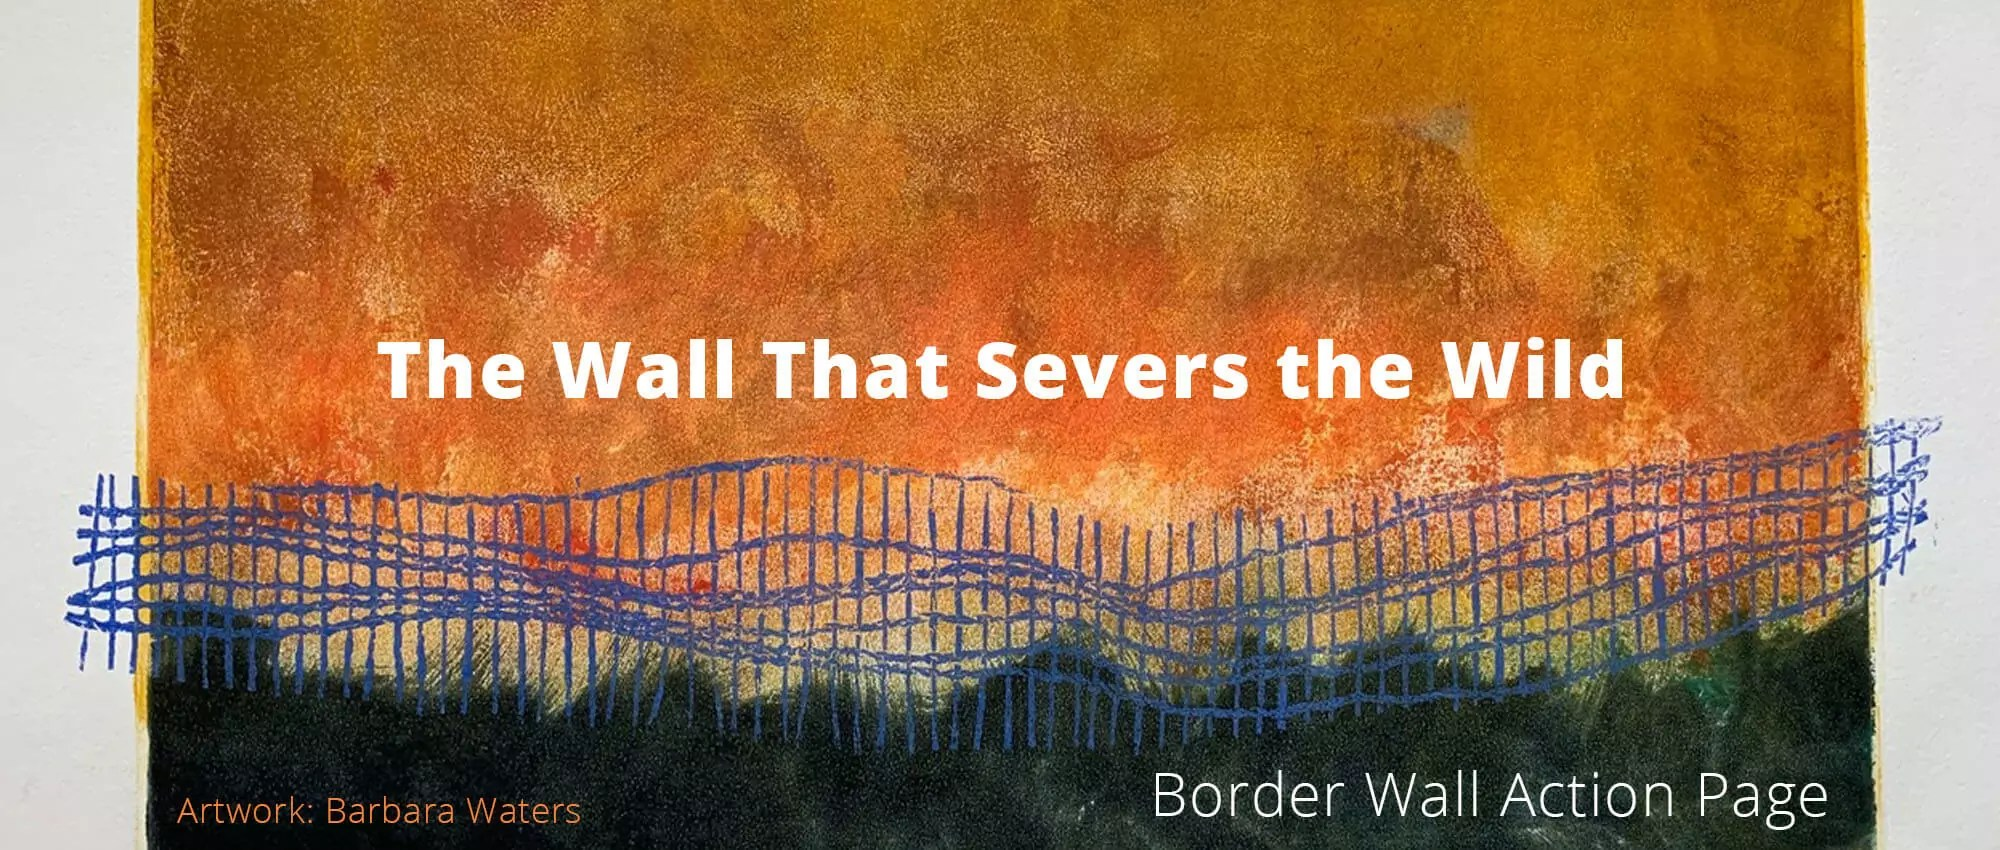 BorderwallAction